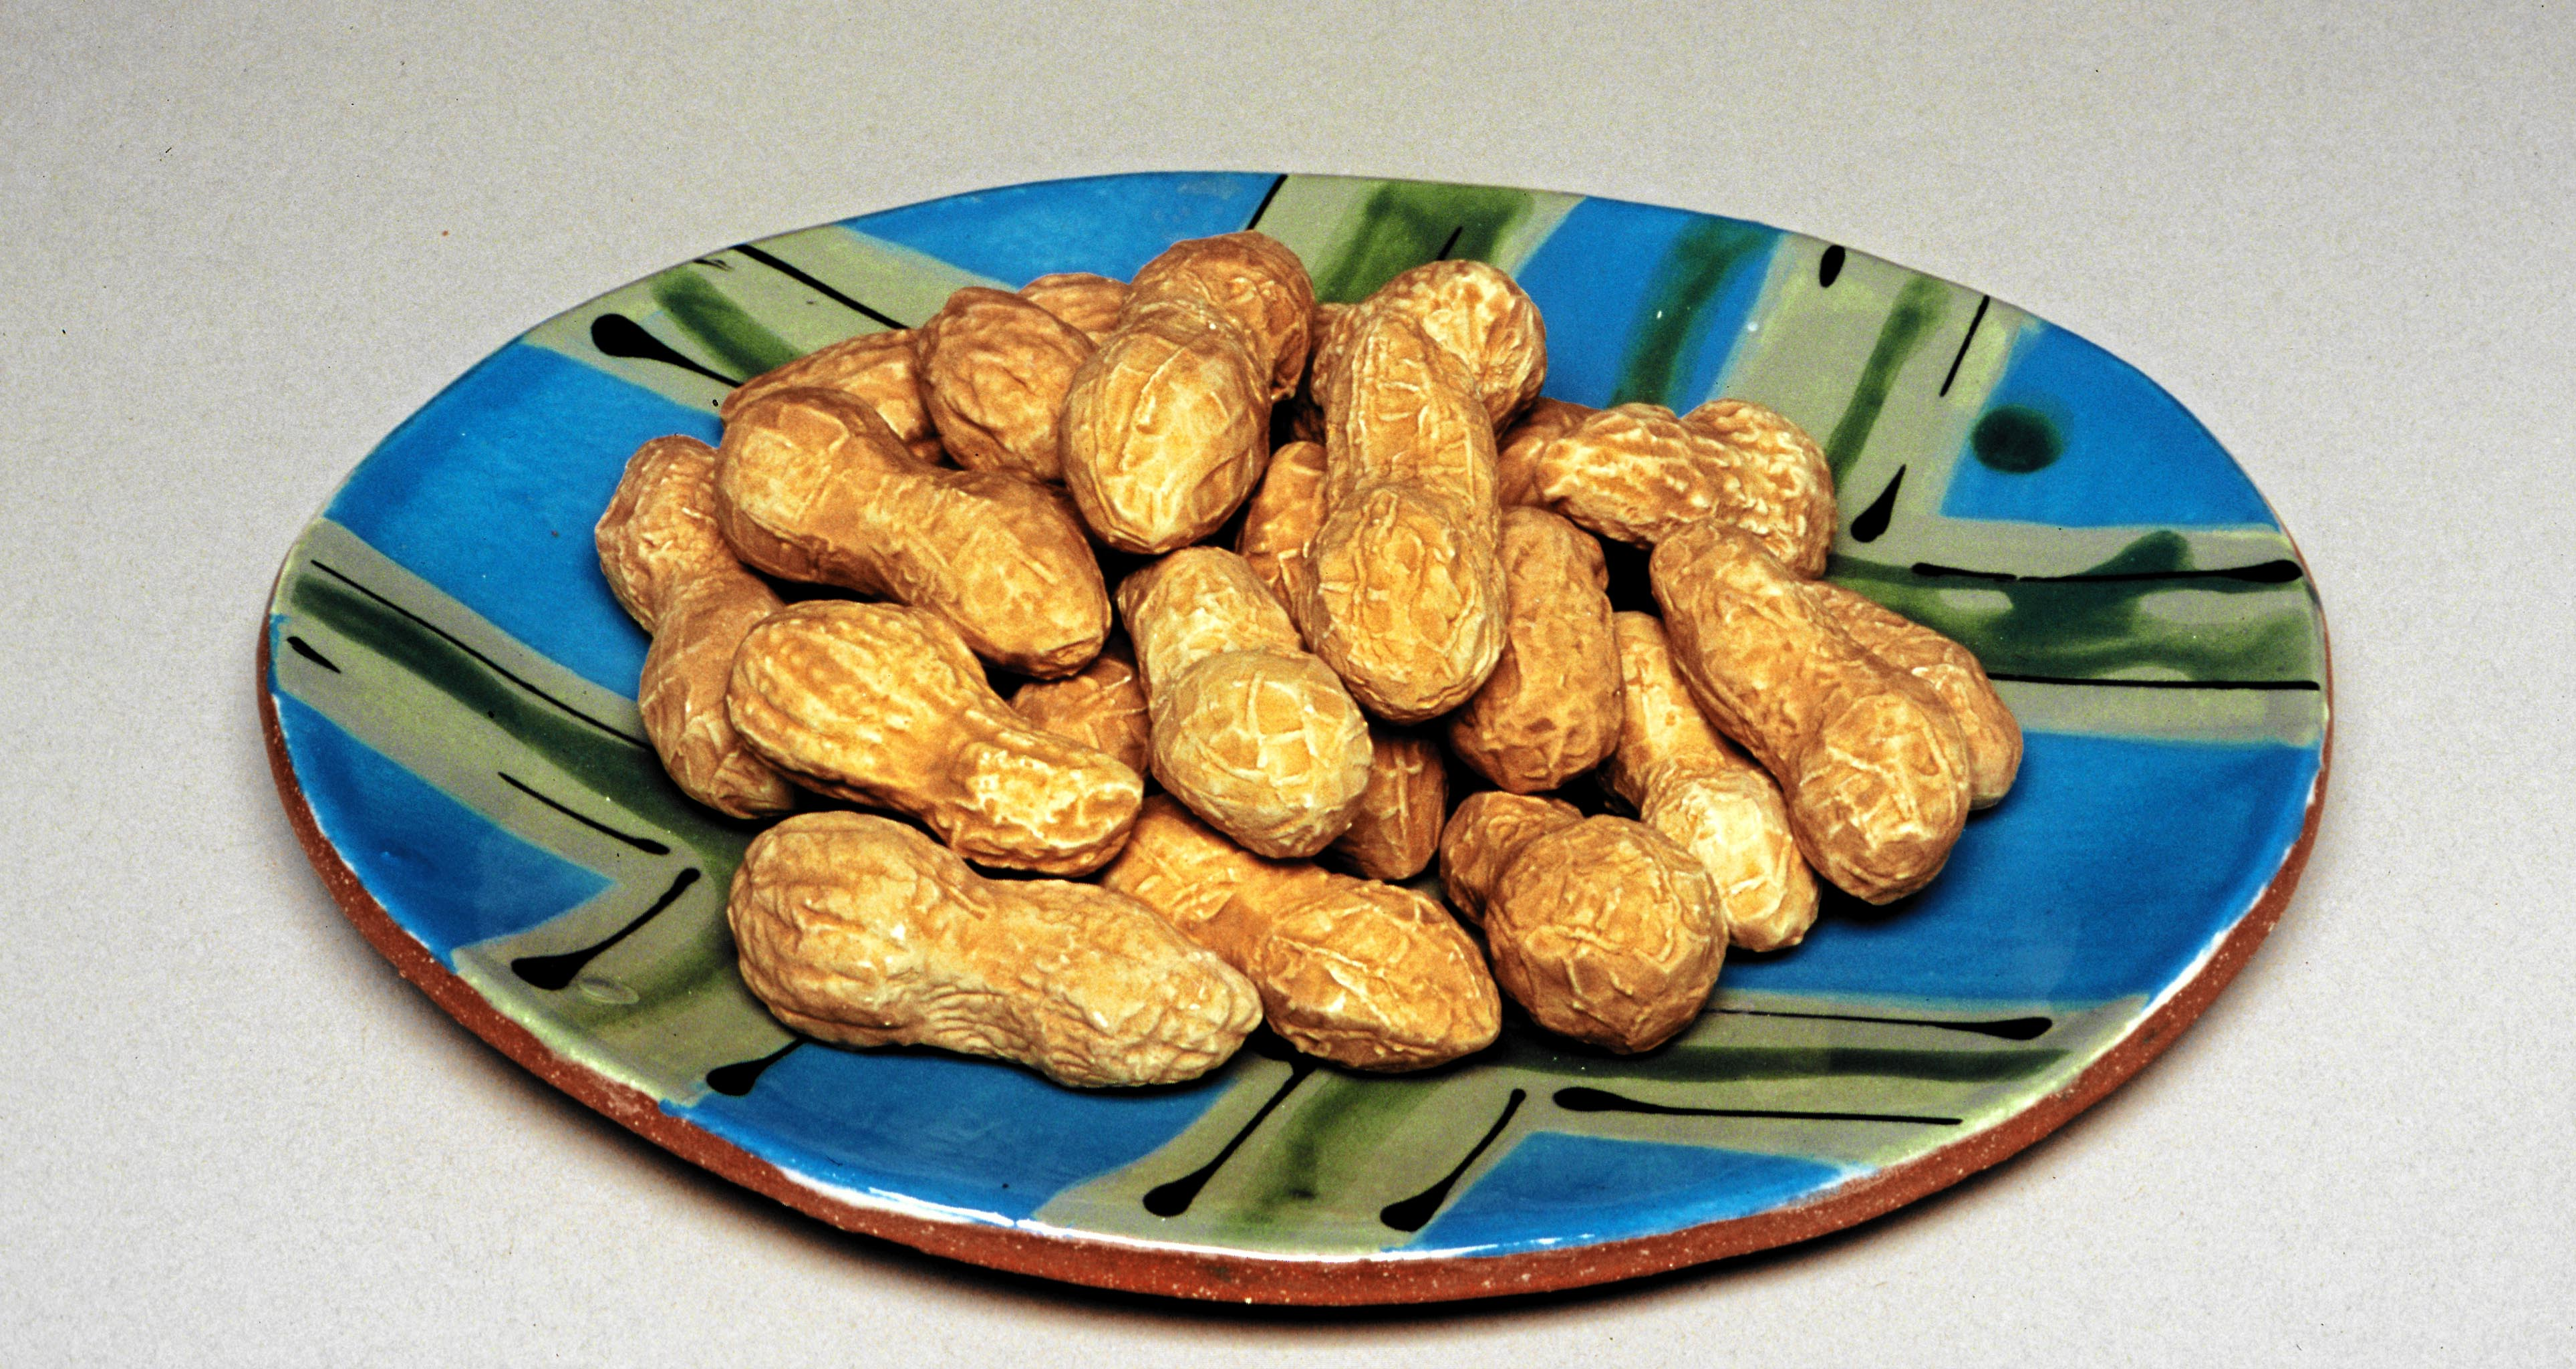 Peanuts on Plate